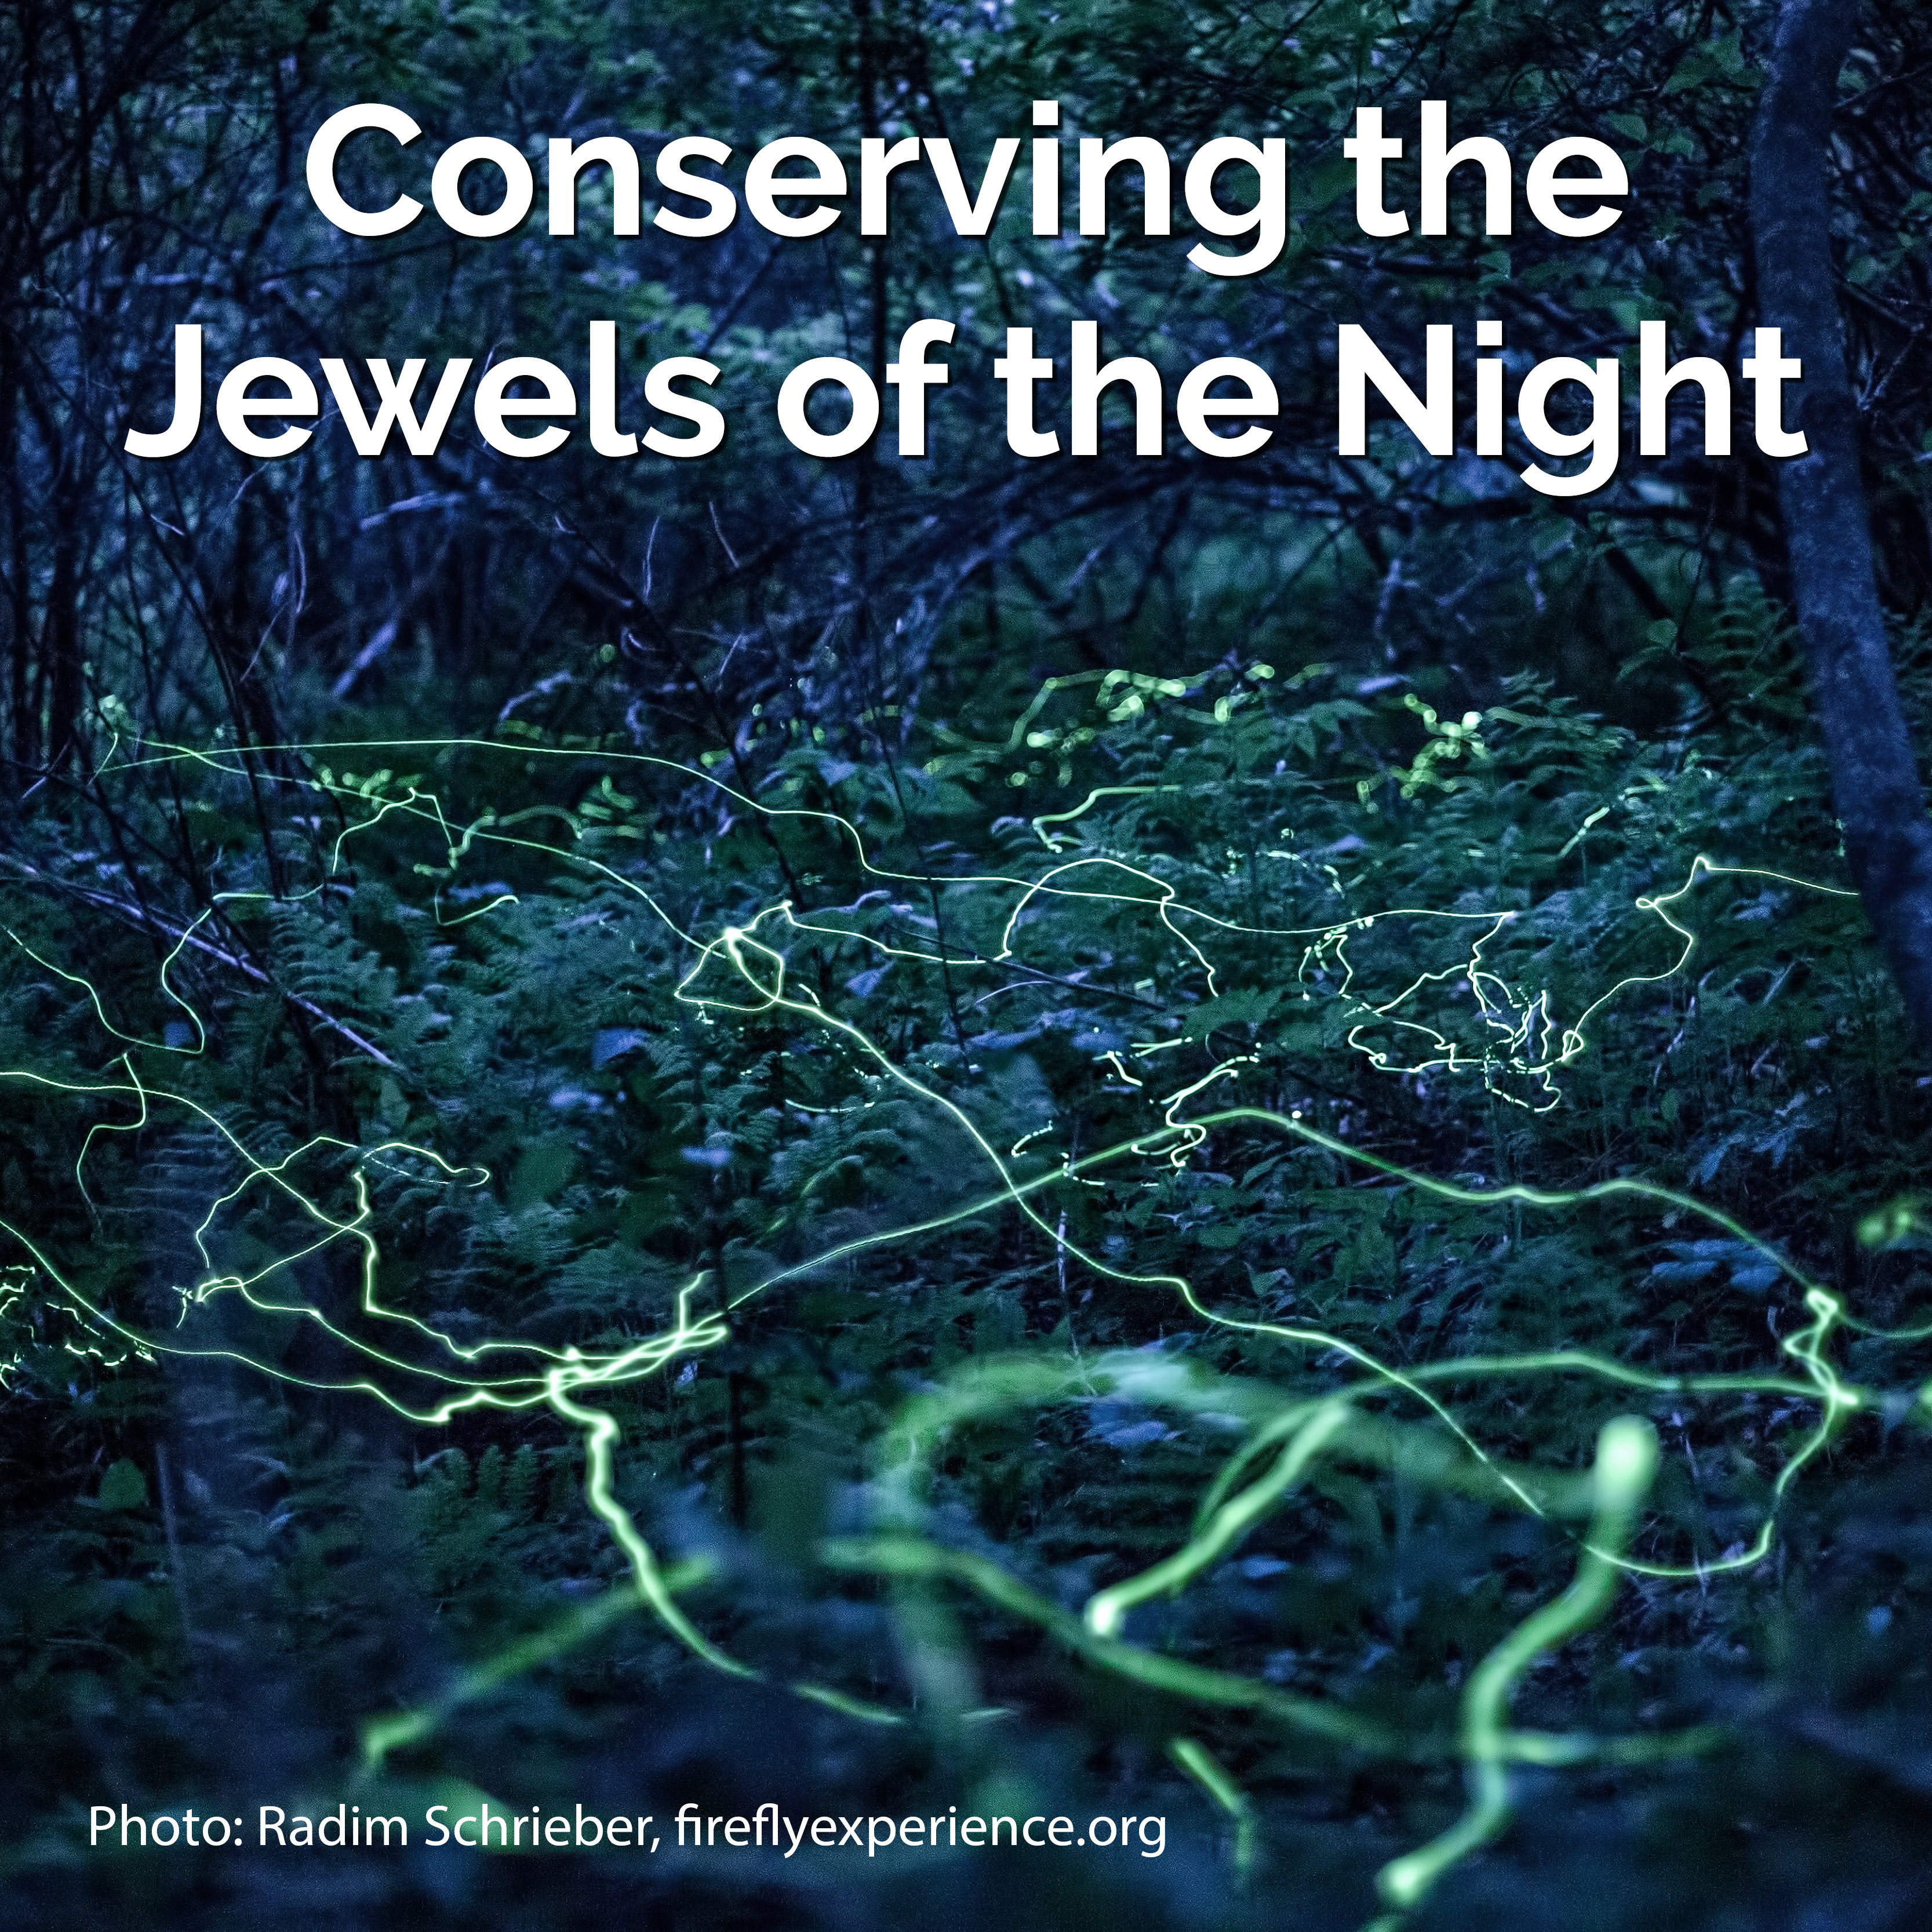 Meandering yellow-green streaks weave through a darkening forest with a thick understory of ferns, in this long-exposure shot of fireflies. Overlayed on this photo is white text that says